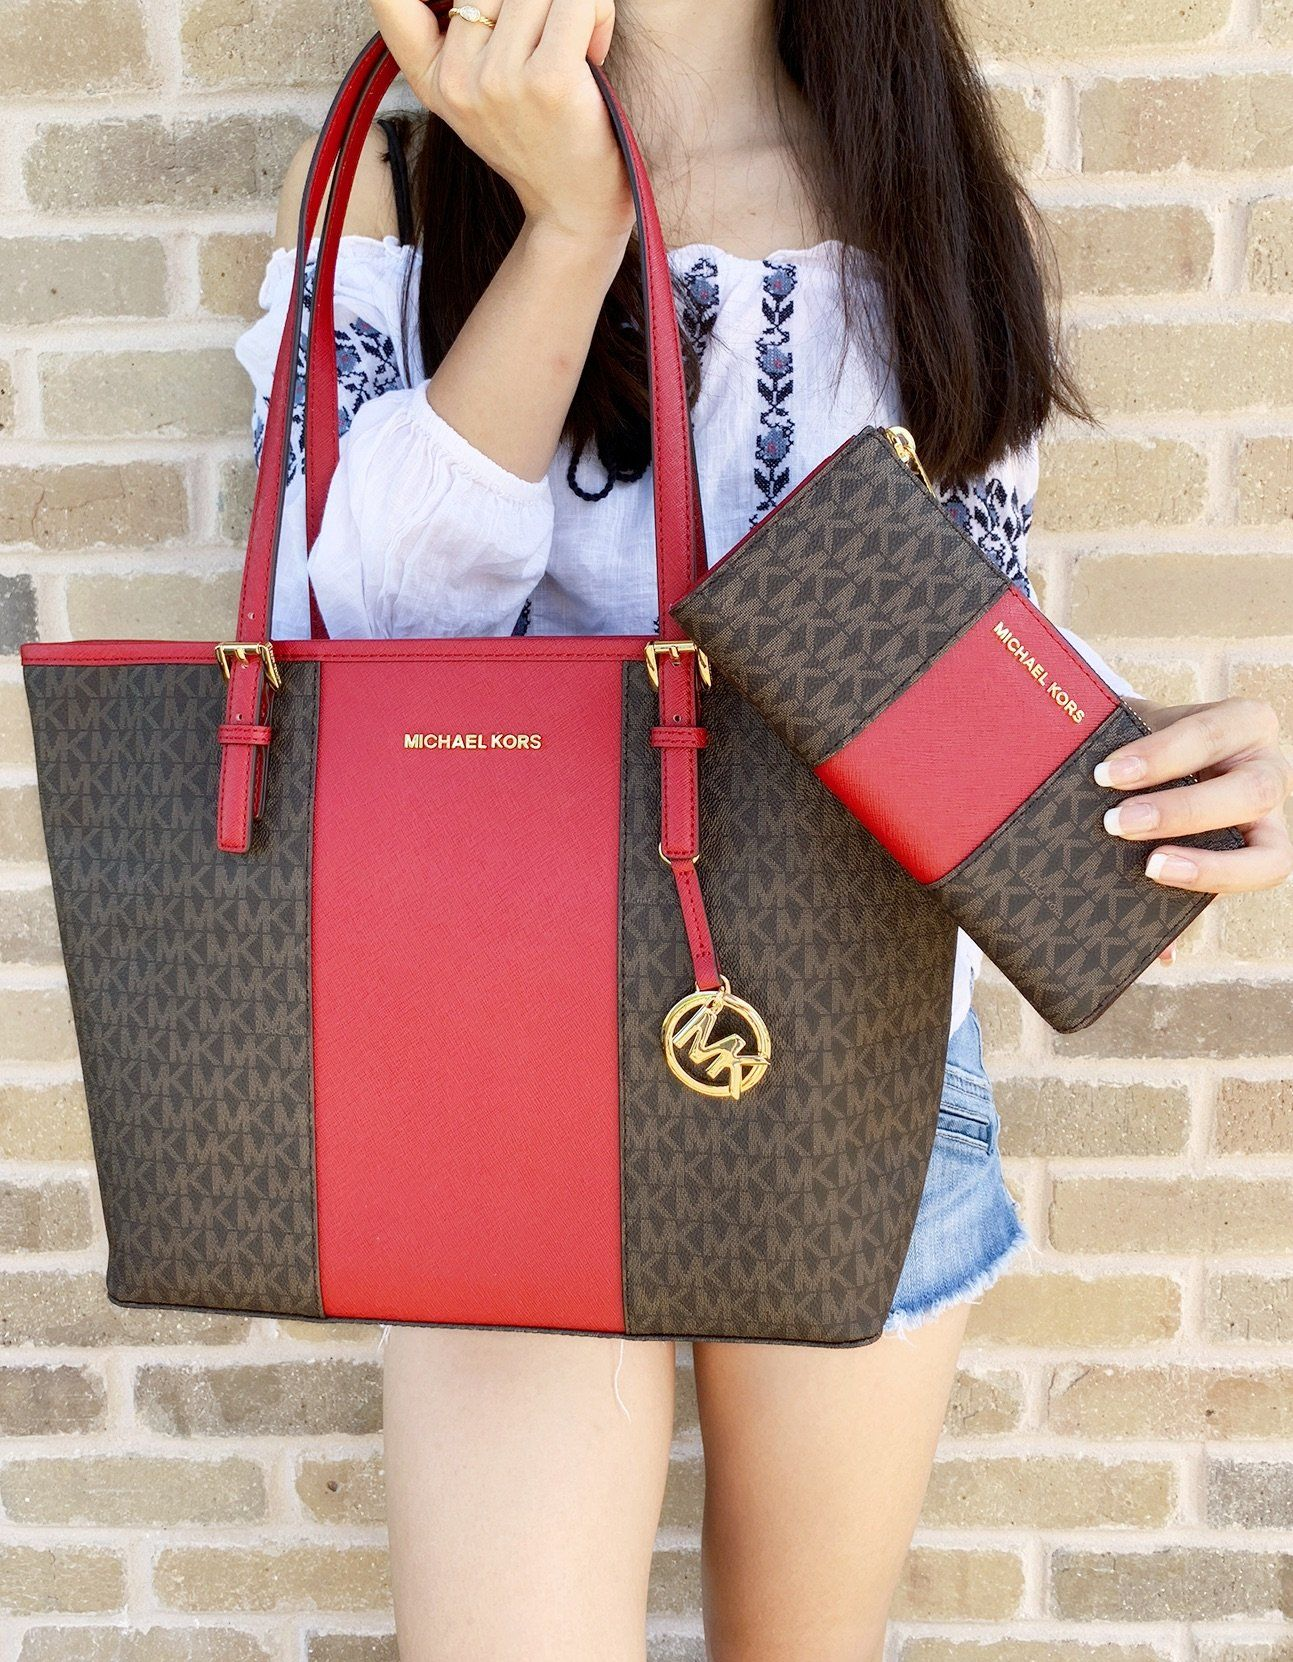 df8edf16aded Michael Kors Medium Carryall Tote Brown MK Signature Red Wallet SET  MK   poshpackages  amazondeals  tradesycloset  ebay  ebayfashion  poshboss   poshcloset ...